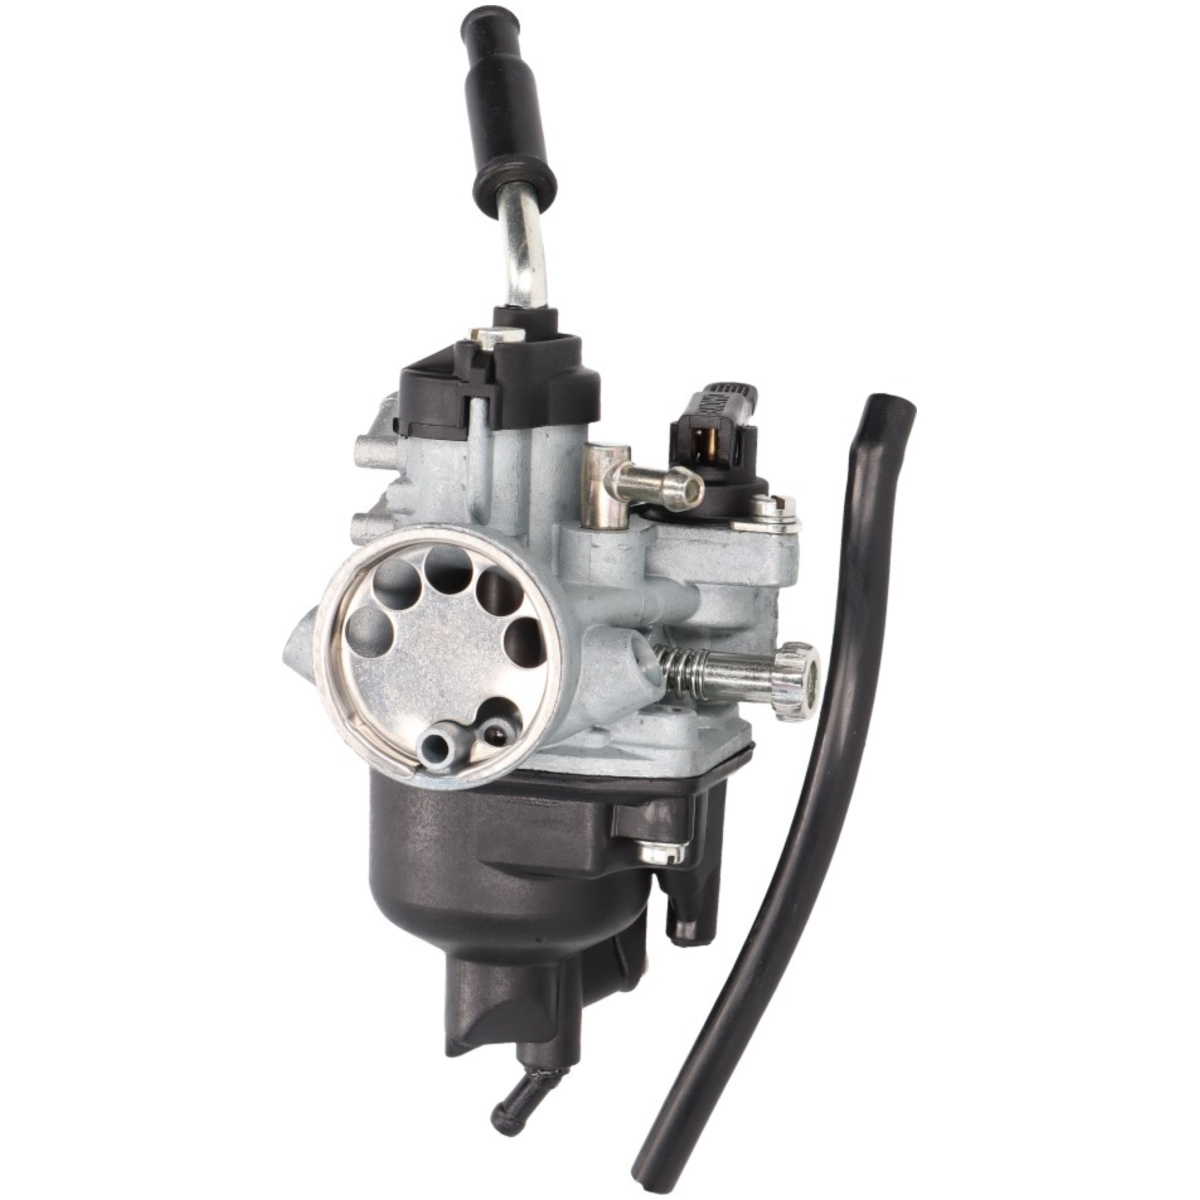 carburetor Dellorto PHVA 17 5mm w/ manual choke for Piaggio, Derbi